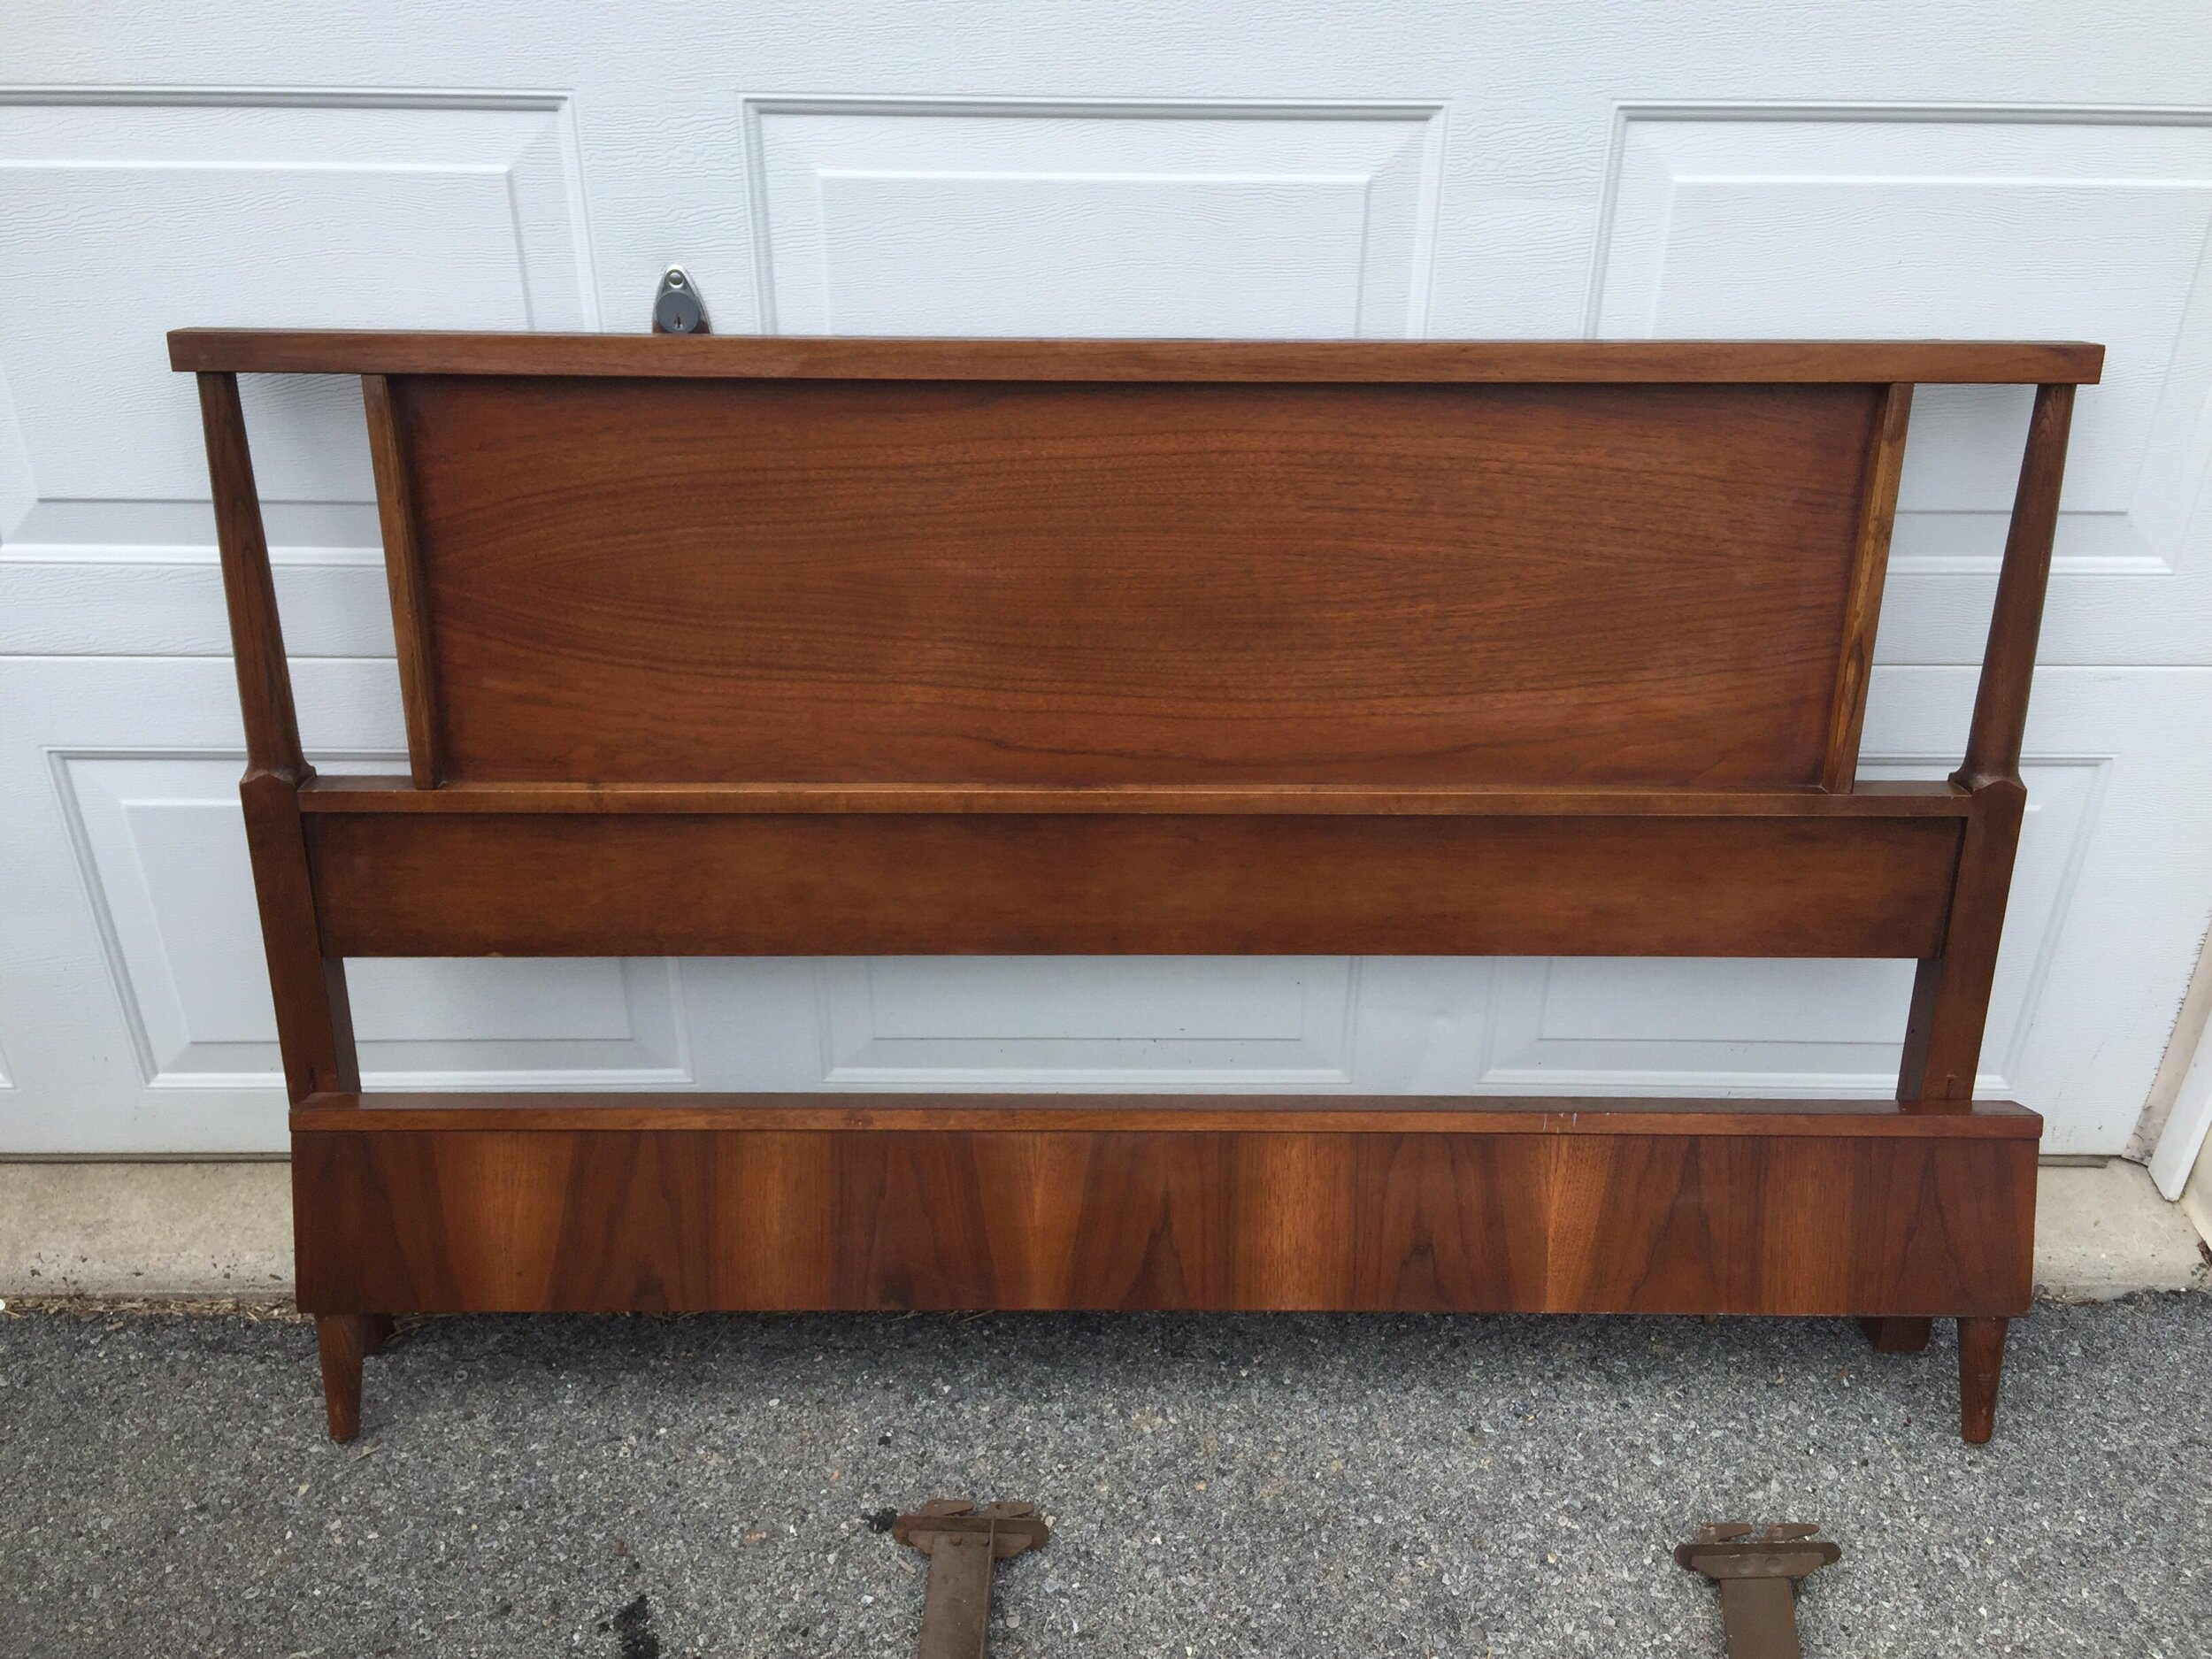 Walnut fUll bed. Can be modified easily for queen. Has headboard, footBoard and i do have the side rails. Will be cheaper to ship without buy that is up to you. This one just listed on etsy and coming to chairish.